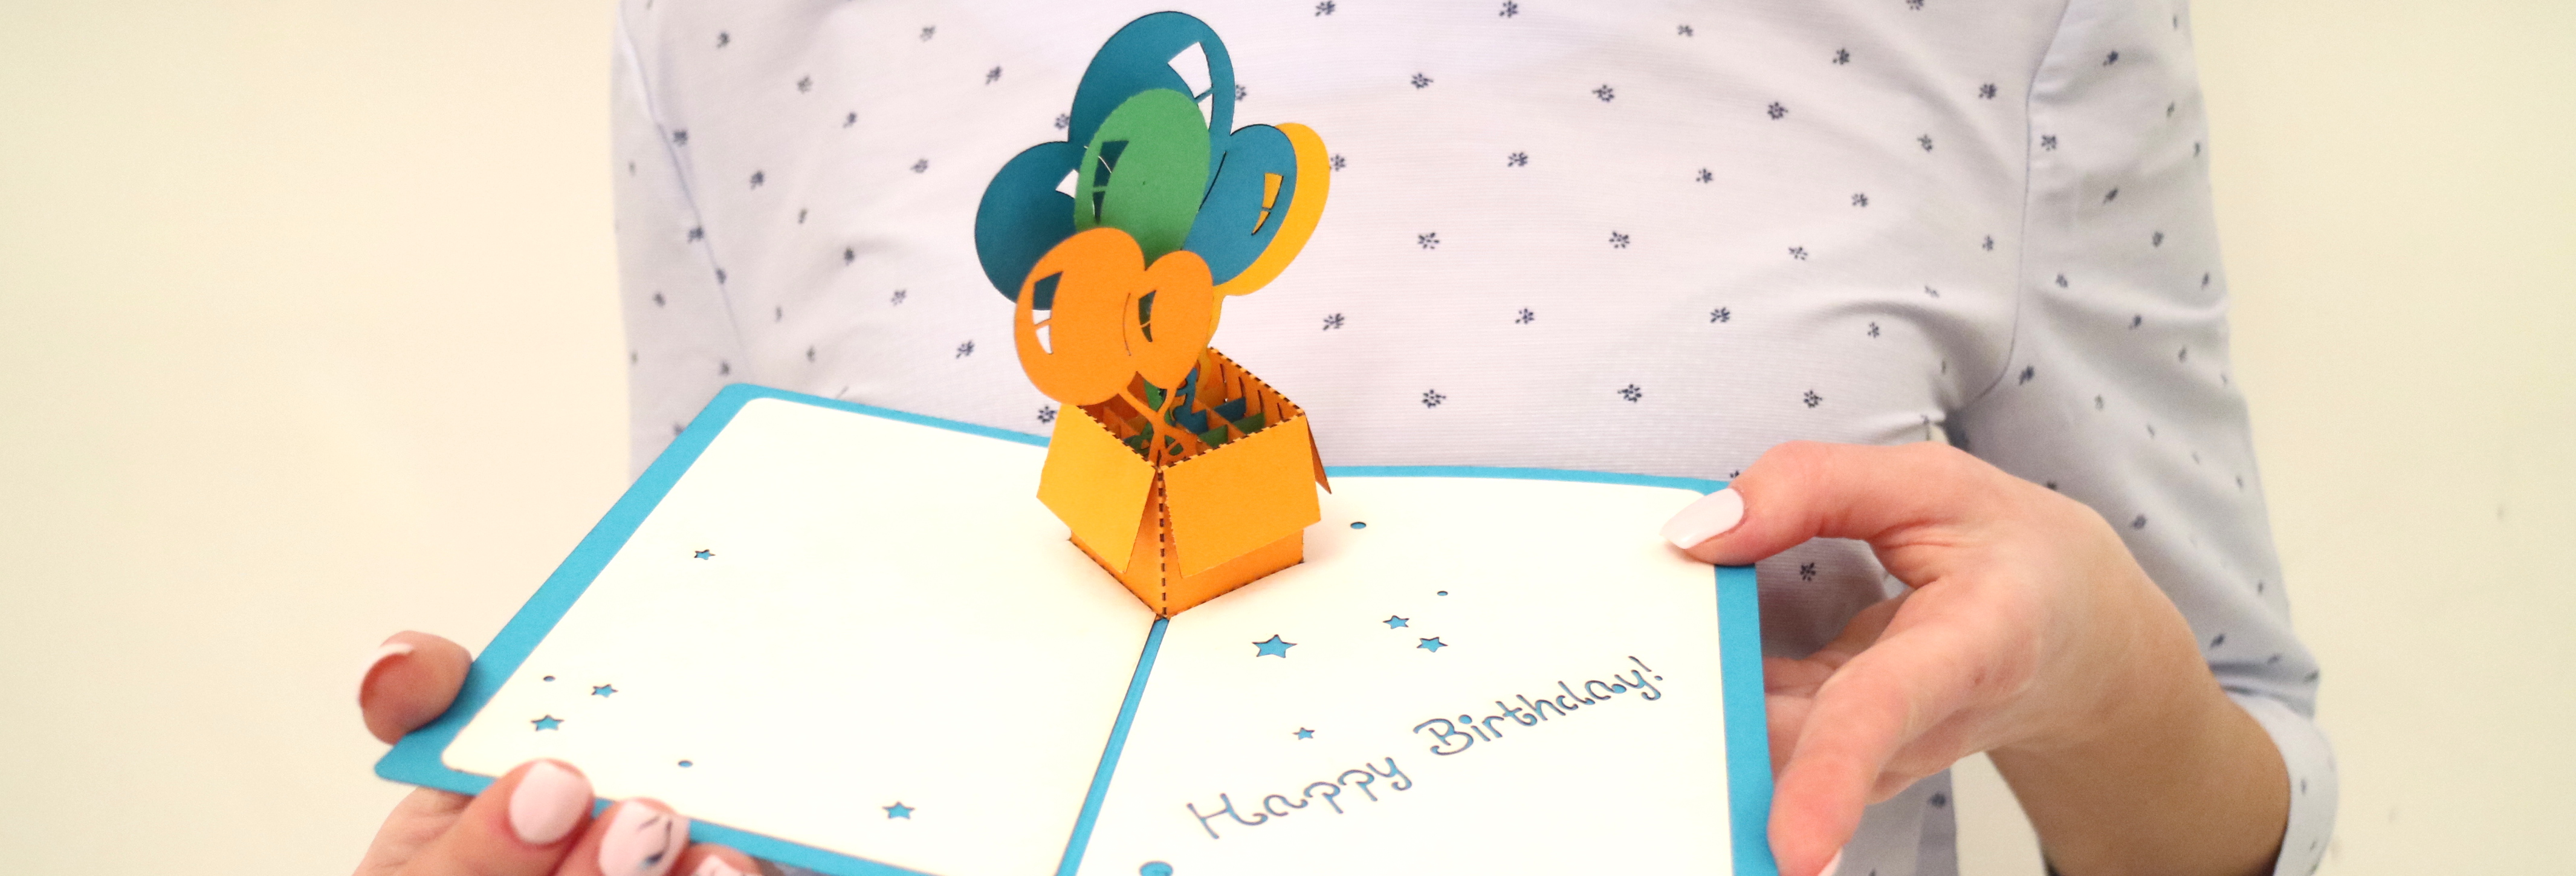 Say Art Uae Papercraft Pop Up 3d Greeting Cards In Dubai